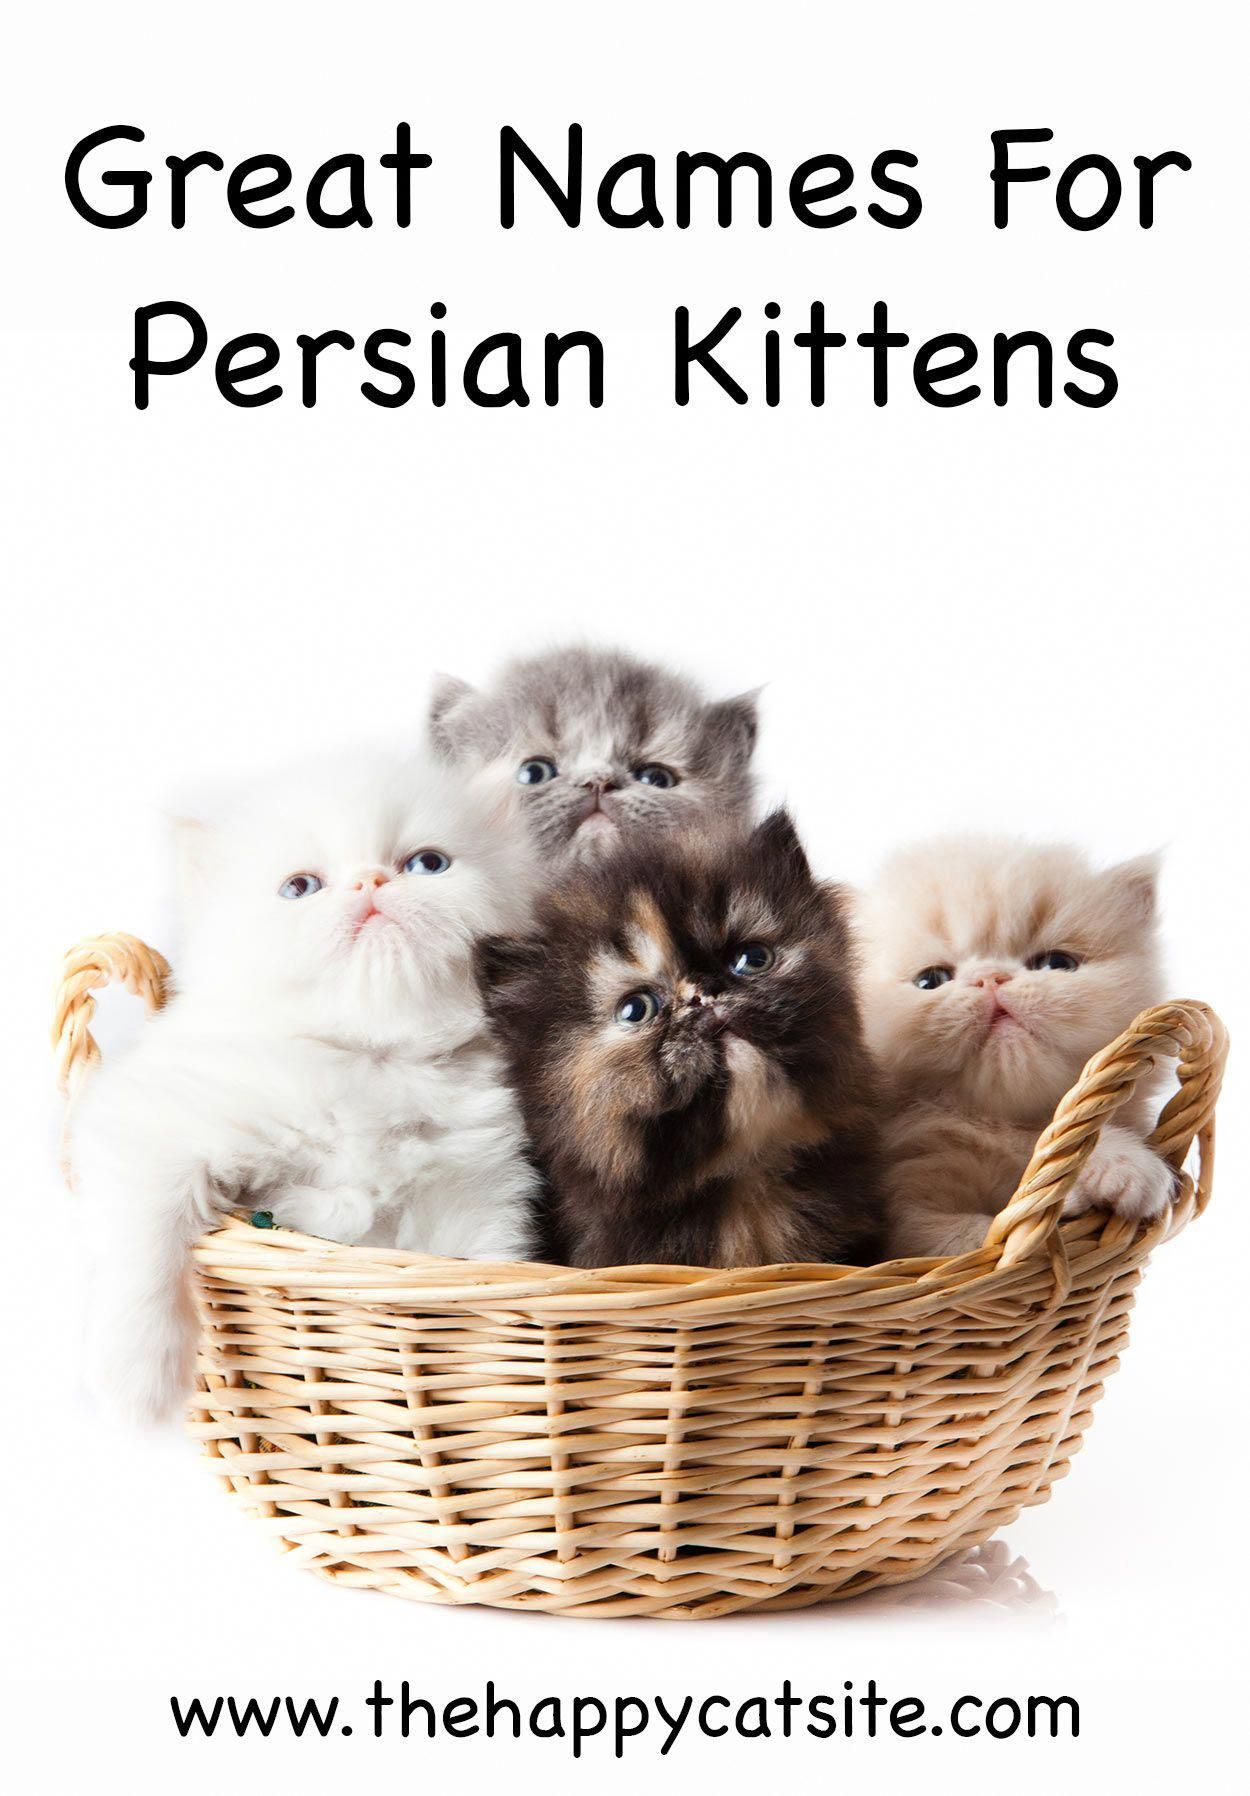 persian cat names great names for your cat. aboutcat